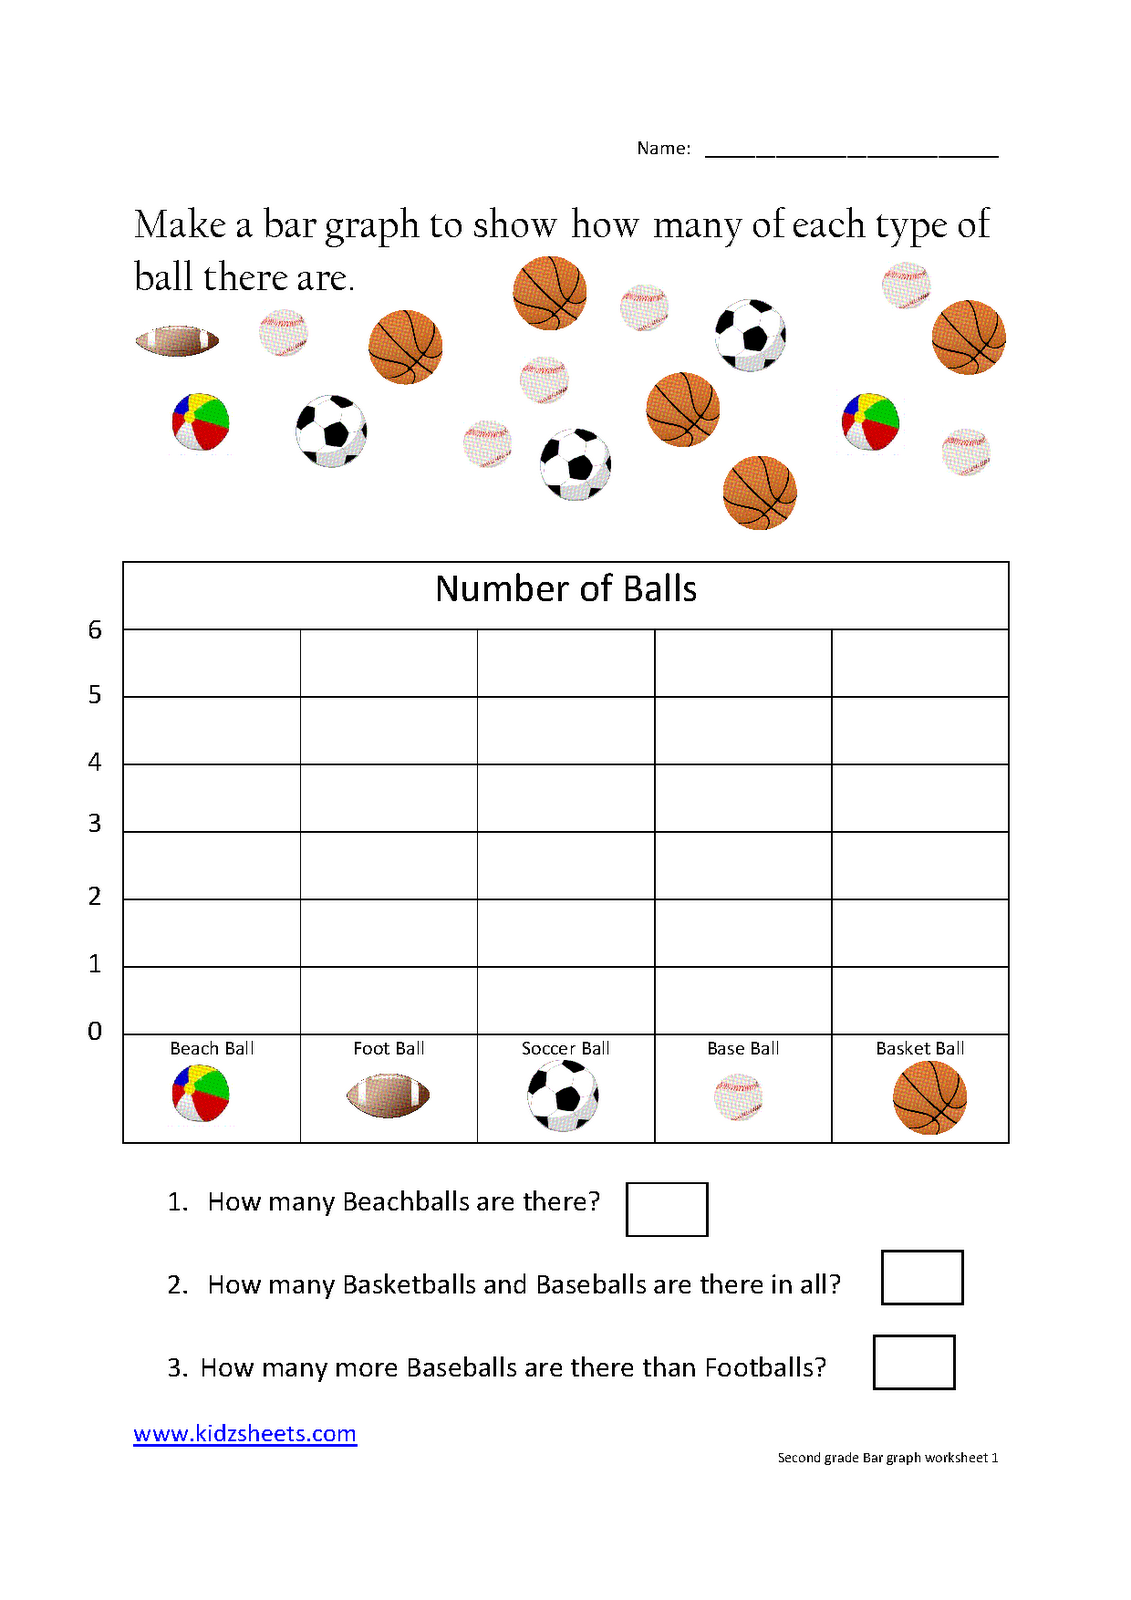 Printables Graph Worksheets kidz worksheets second grade bar graph worksheet1 graph